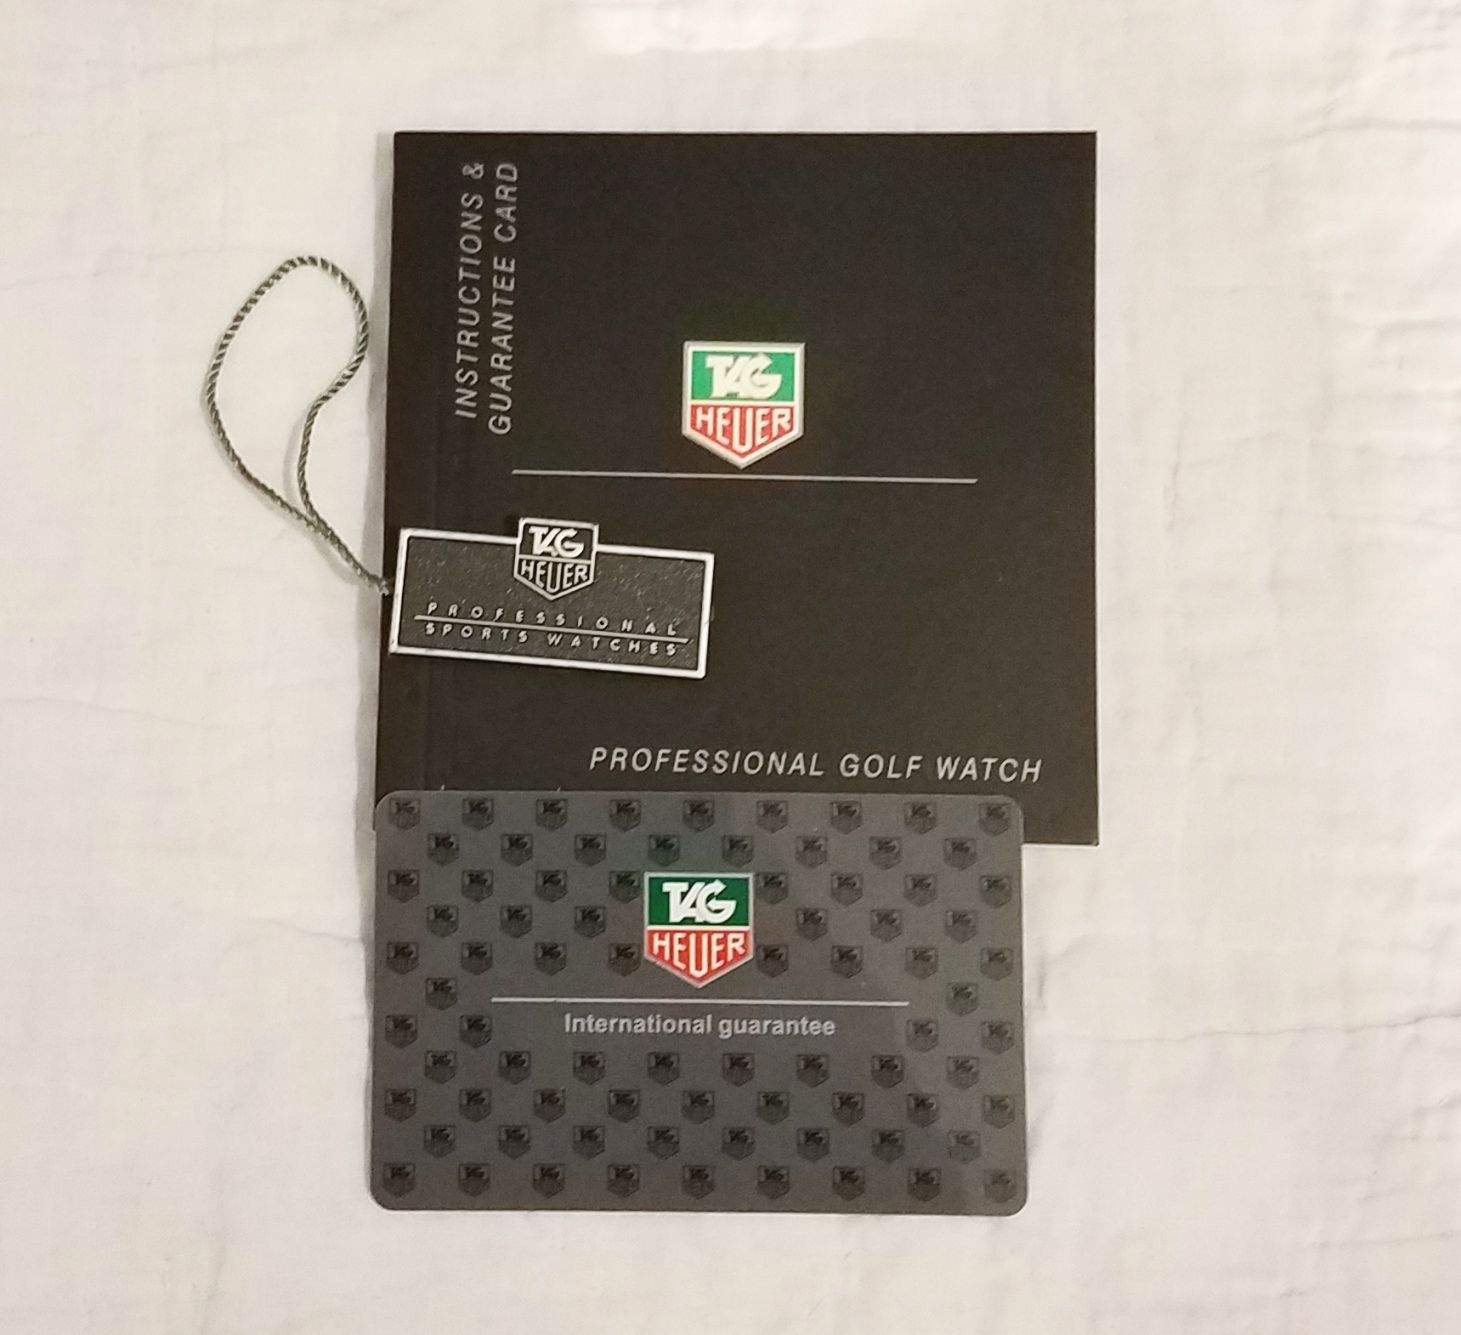 Manuals And Guides 93720 Tag Heuer Professional Golf Watch